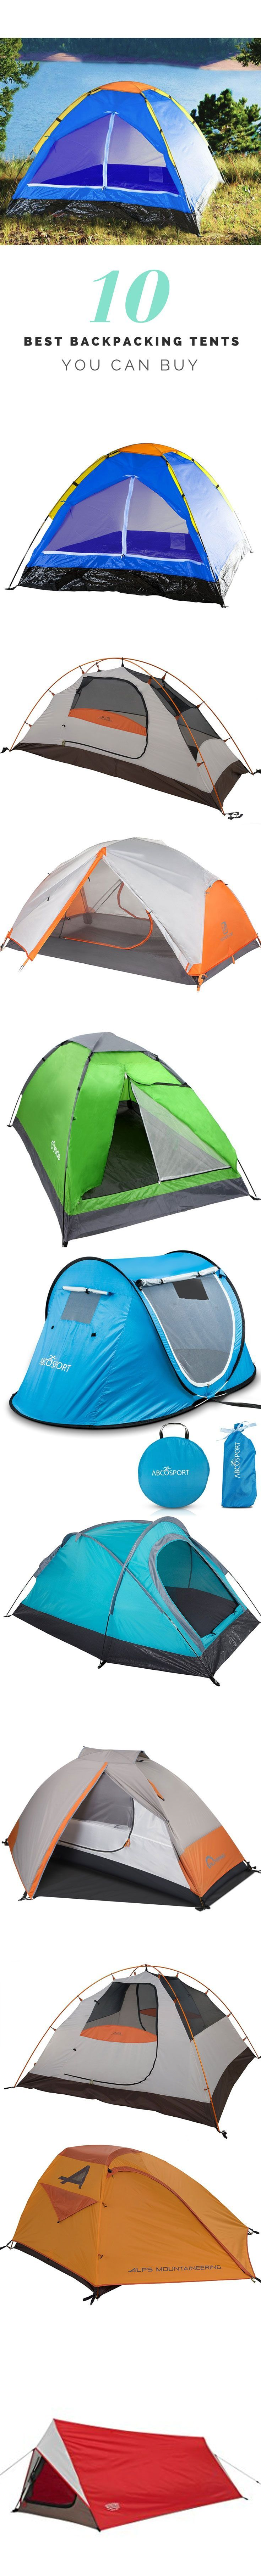 Best Backpacking Tents  Get the 10 bestsellers, expensive and cheap Best Backpacking Tents what you can buy Online.  Expensive, Cheap and Best Seller Backpacking Tents If you think to buy Backpacking Tents than this article can be a guide for you.  This list was generated from the top 100 performers and was narrowed down to the best 10 items.   http://www.buzzthisviral.com/best-backpacking-tents/  #backpacking #tent #tents backpacks #camping #hiking #outdoor #amazon #shopping #buy…